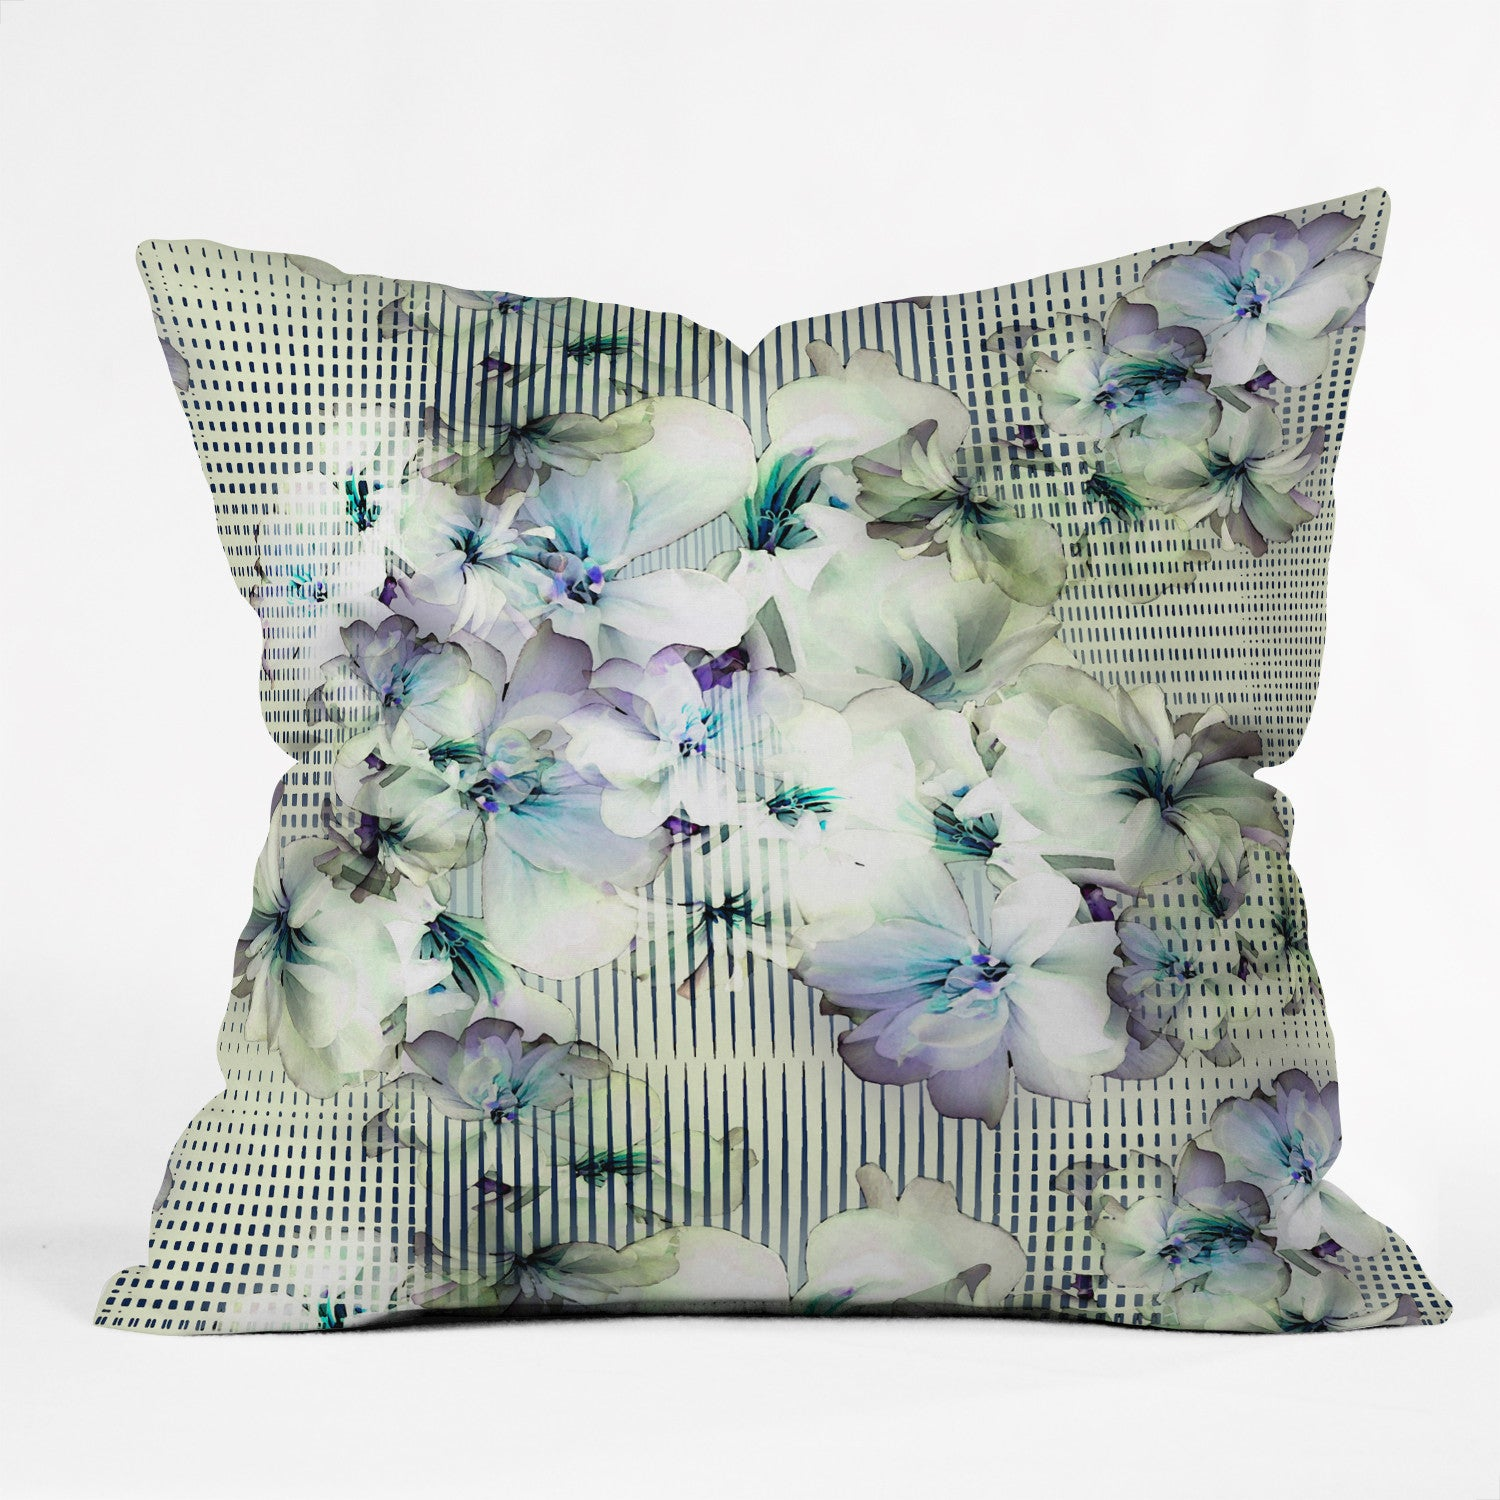 Bel Lefosse Design Flowers And Lines Outdoor Throw Pillow